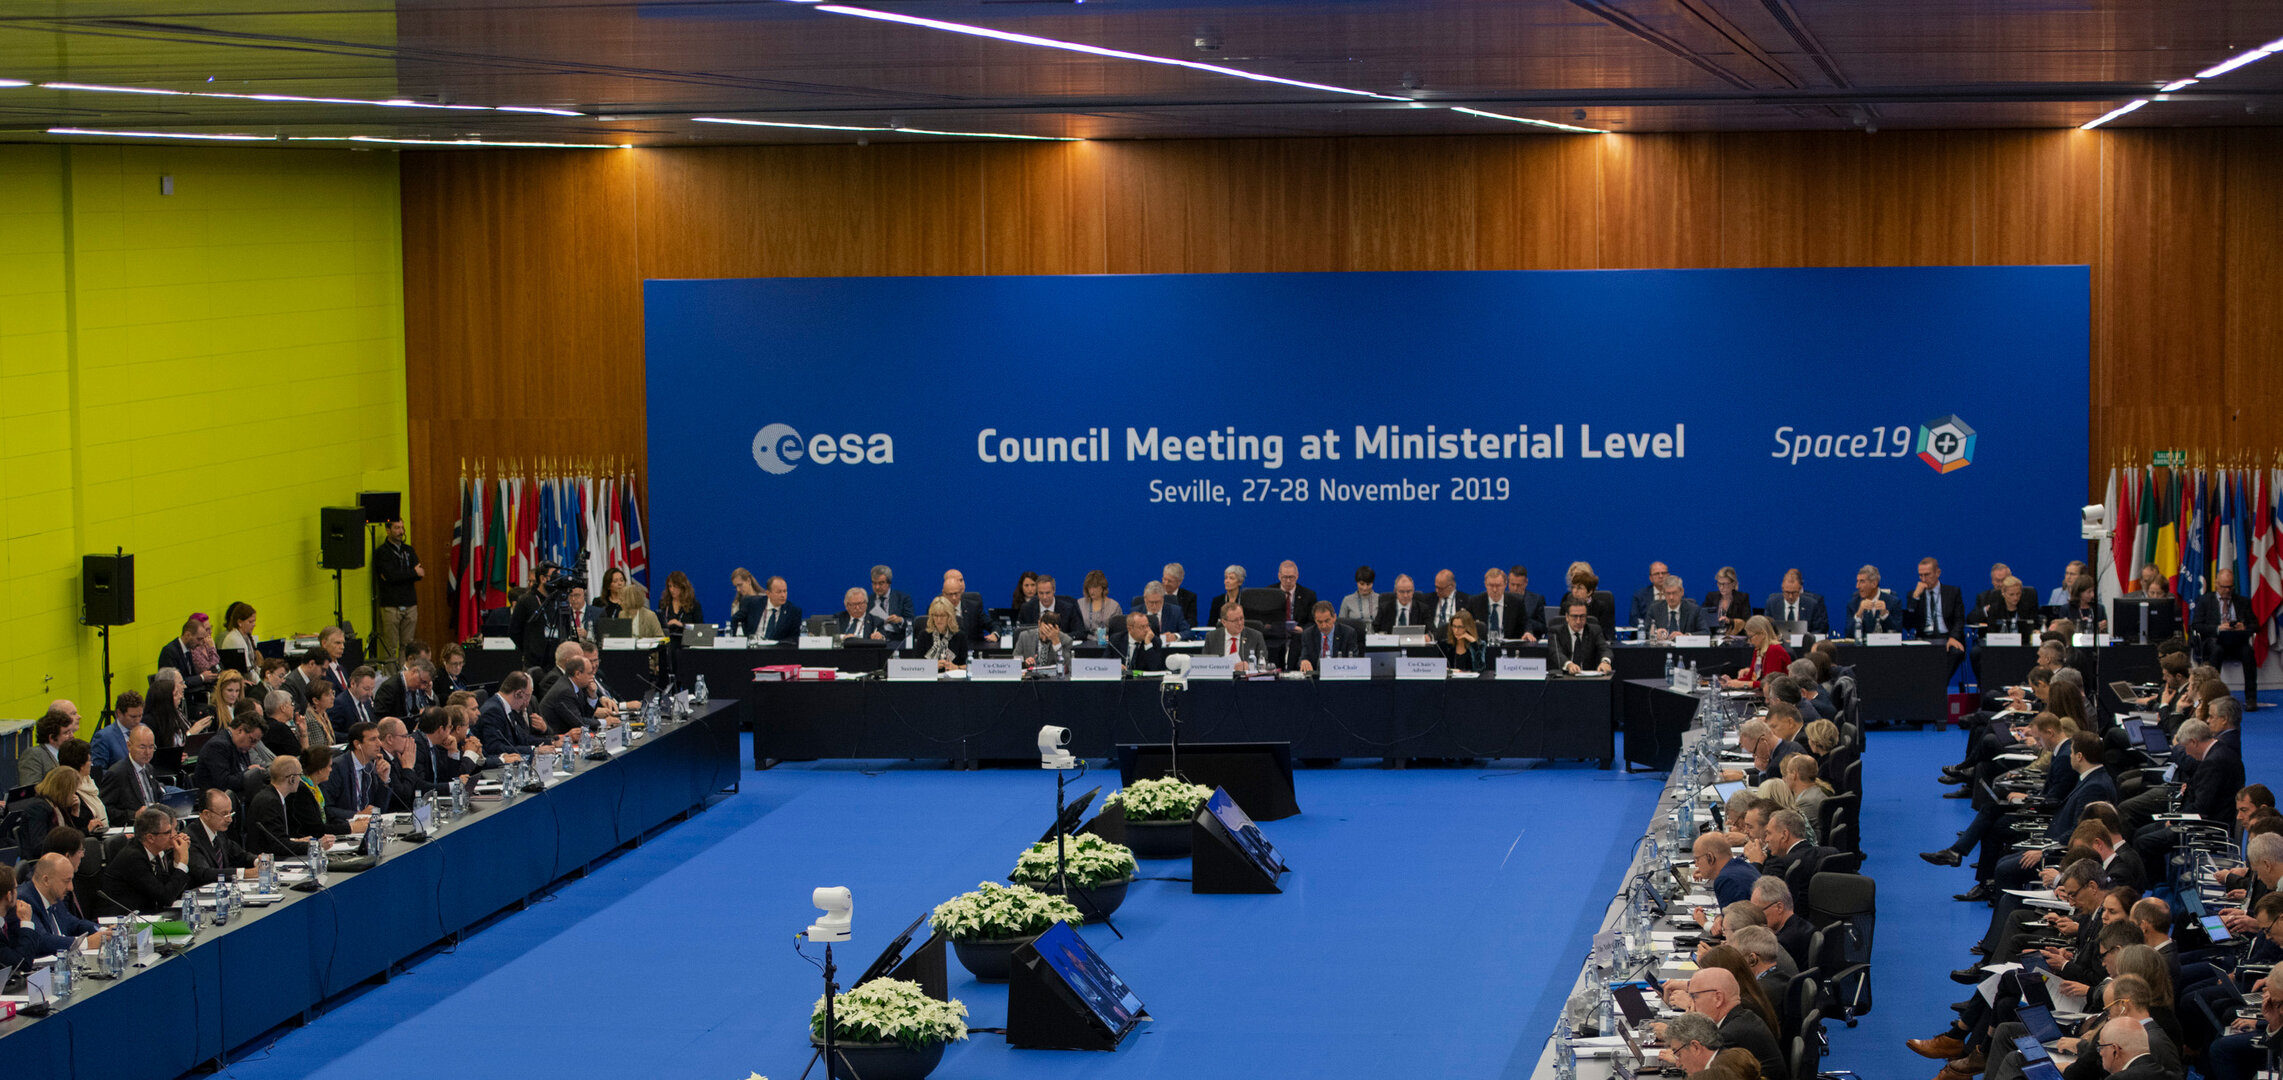 Space19+, the ESA Council at Ministerial level, in Seville, Spain